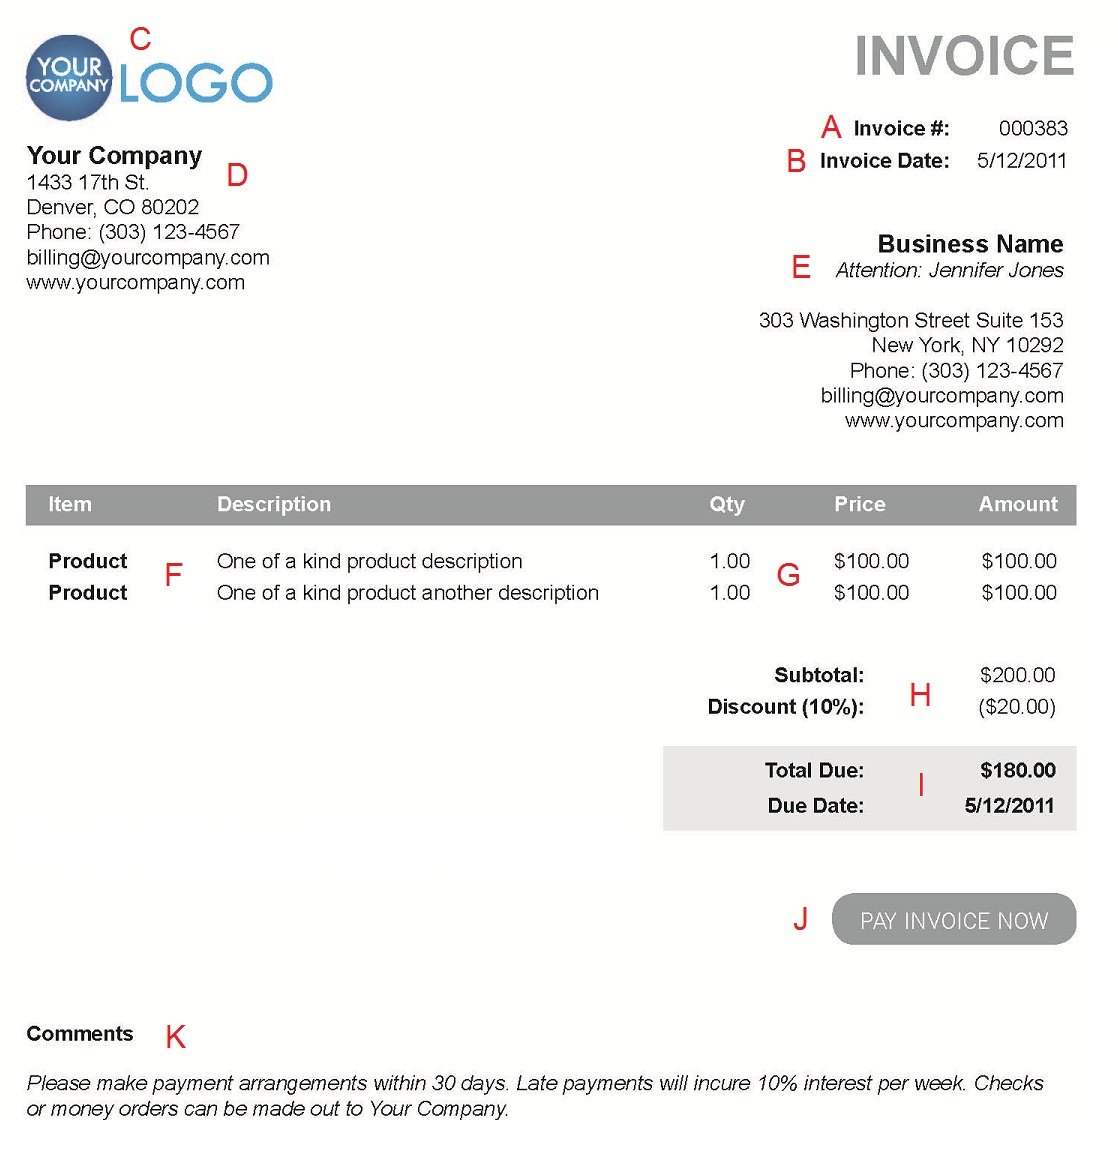 Occupyhistoryus  Sweet The  Different Sections Of An Electronic Payment Invoice With Magnificent A  With Extraordinary Commercial Invoice Sample Excel Also Ms Word Invoice Template Mac In Addition Commercial Invoice Shipping And Invoice Delivery As Well As Hillstone Invoice Manager Additionally Due Invoice From Paysimplecom With Occupyhistoryus  Magnificent The  Different Sections Of An Electronic Payment Invoice With Extraordinary A  And Sweet Commercial Invoice Sample Excel Also Ms Word Invoice Template Mac In Addition Commercial Invoice Shipping From Paysimplecom